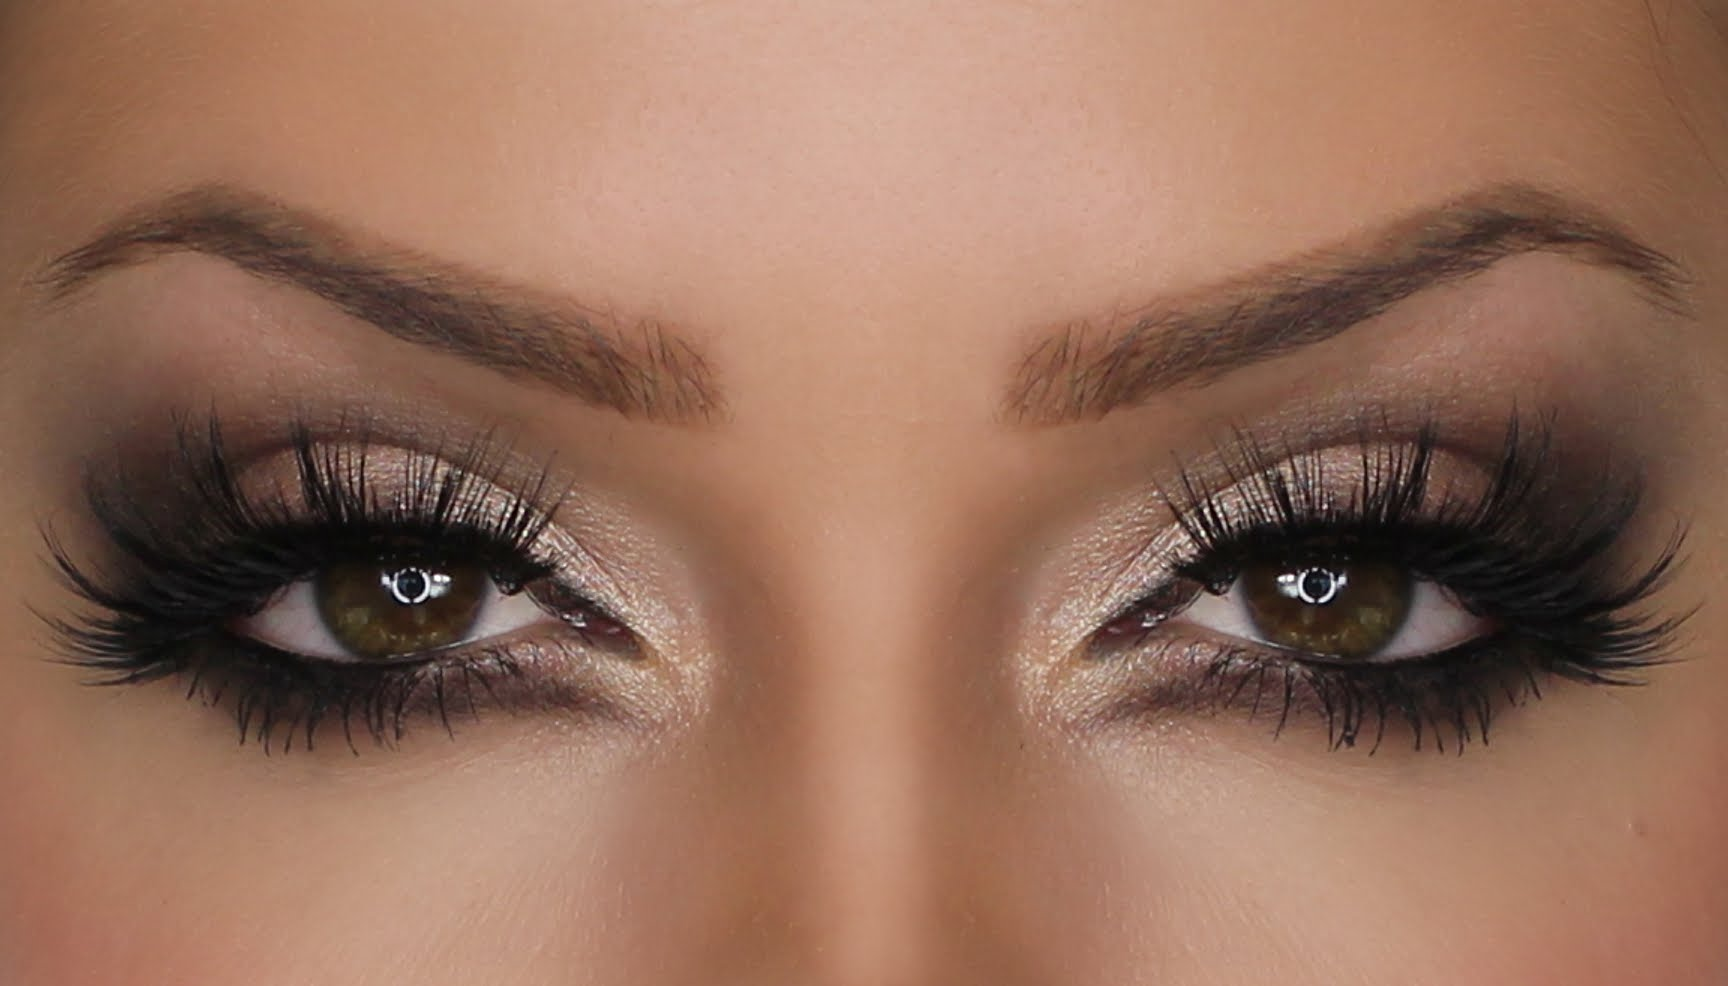 Sultry Eye Look with Eyelash Extensions